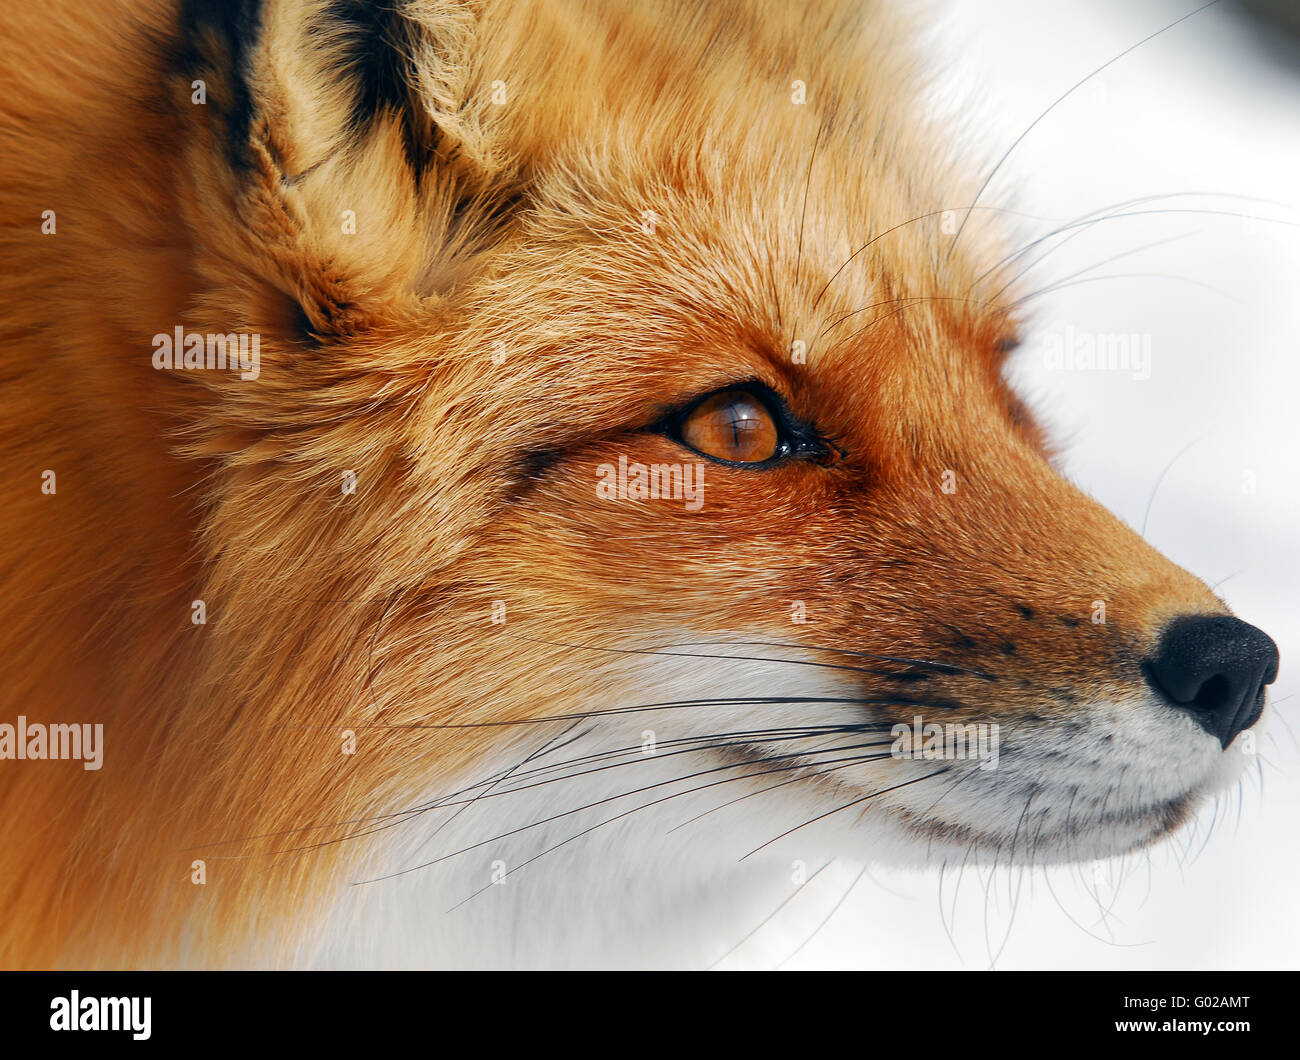 Close-up picture of a wild Red Fox - Stock Image